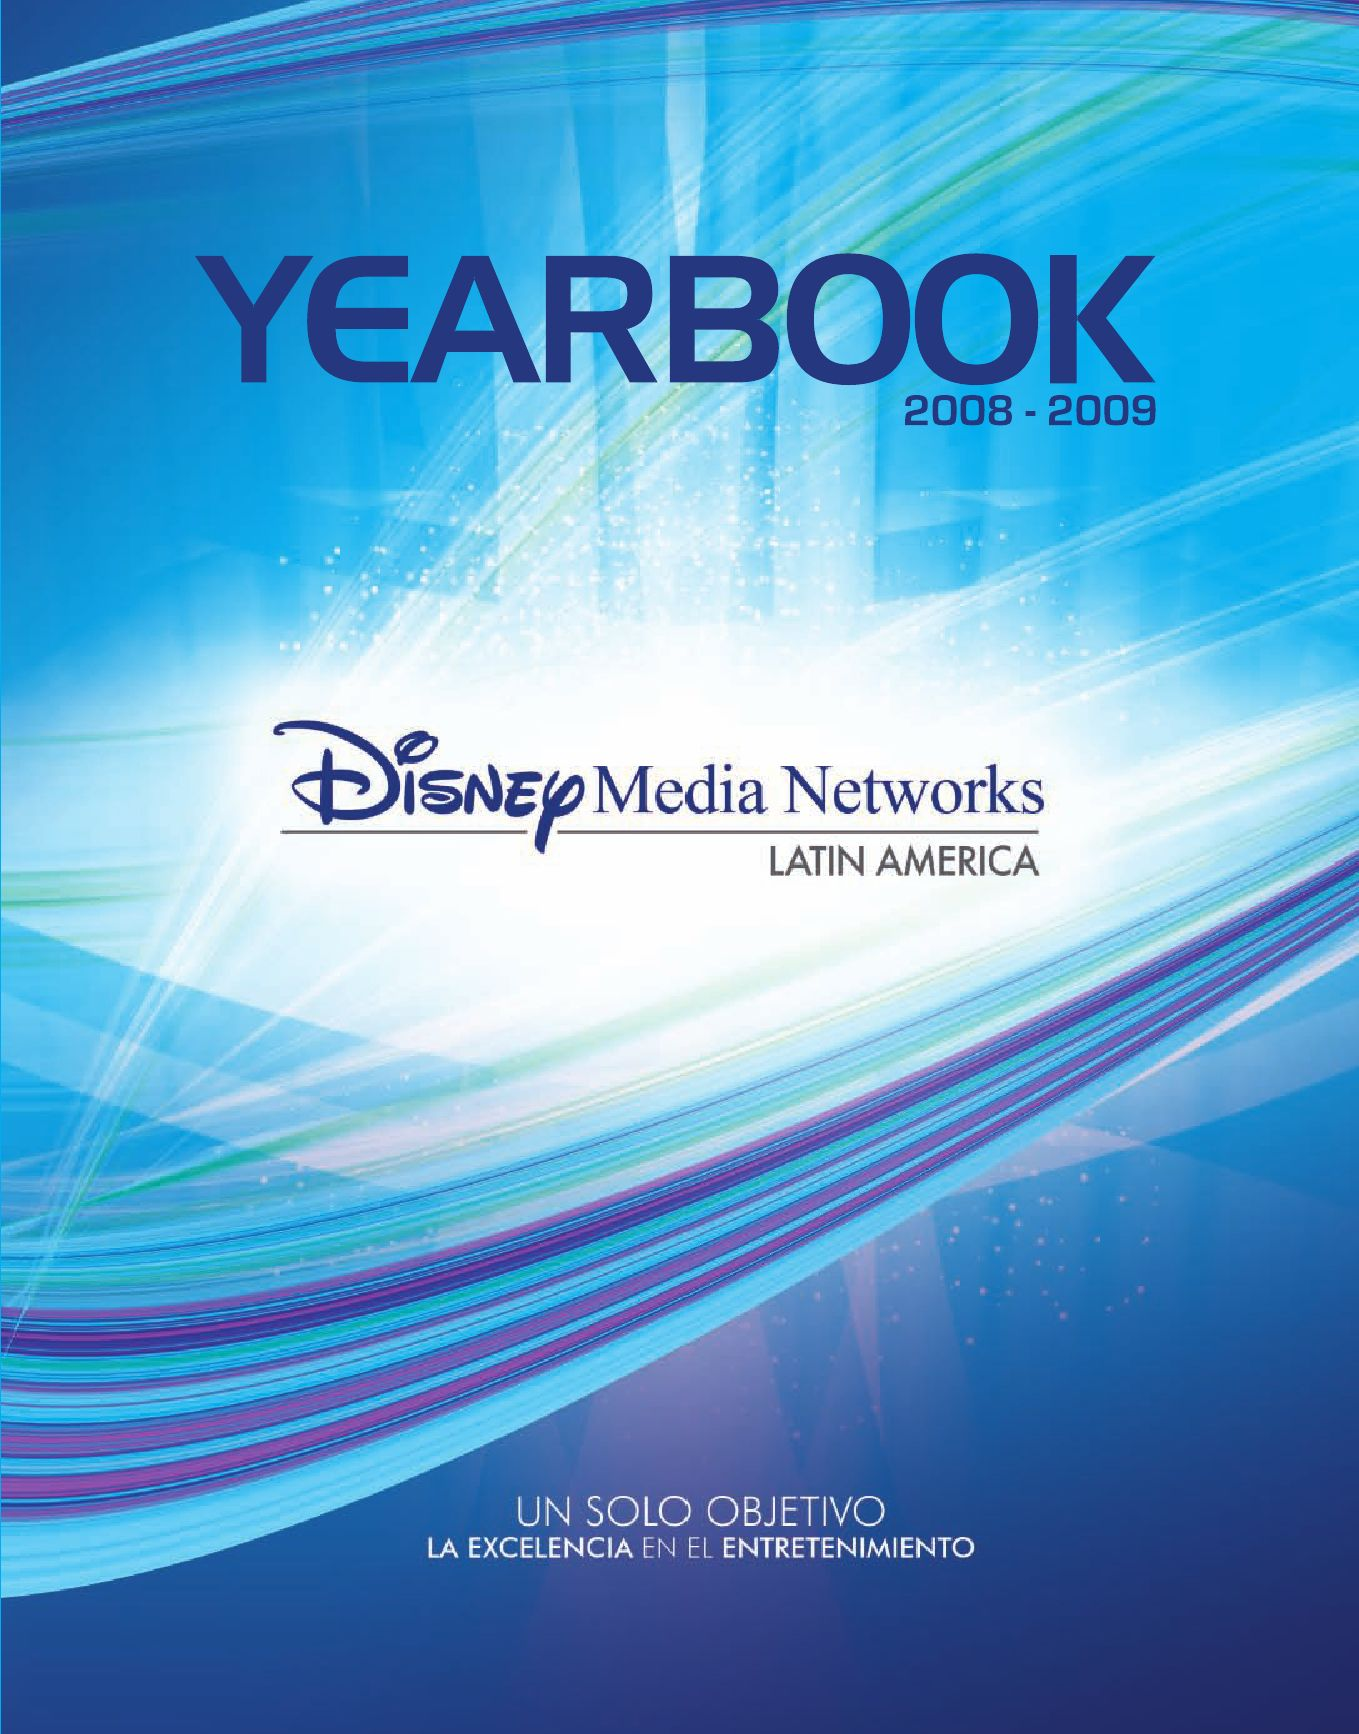 YEARBOOK | 2008 - 2009 by TodotvMedia - issuu